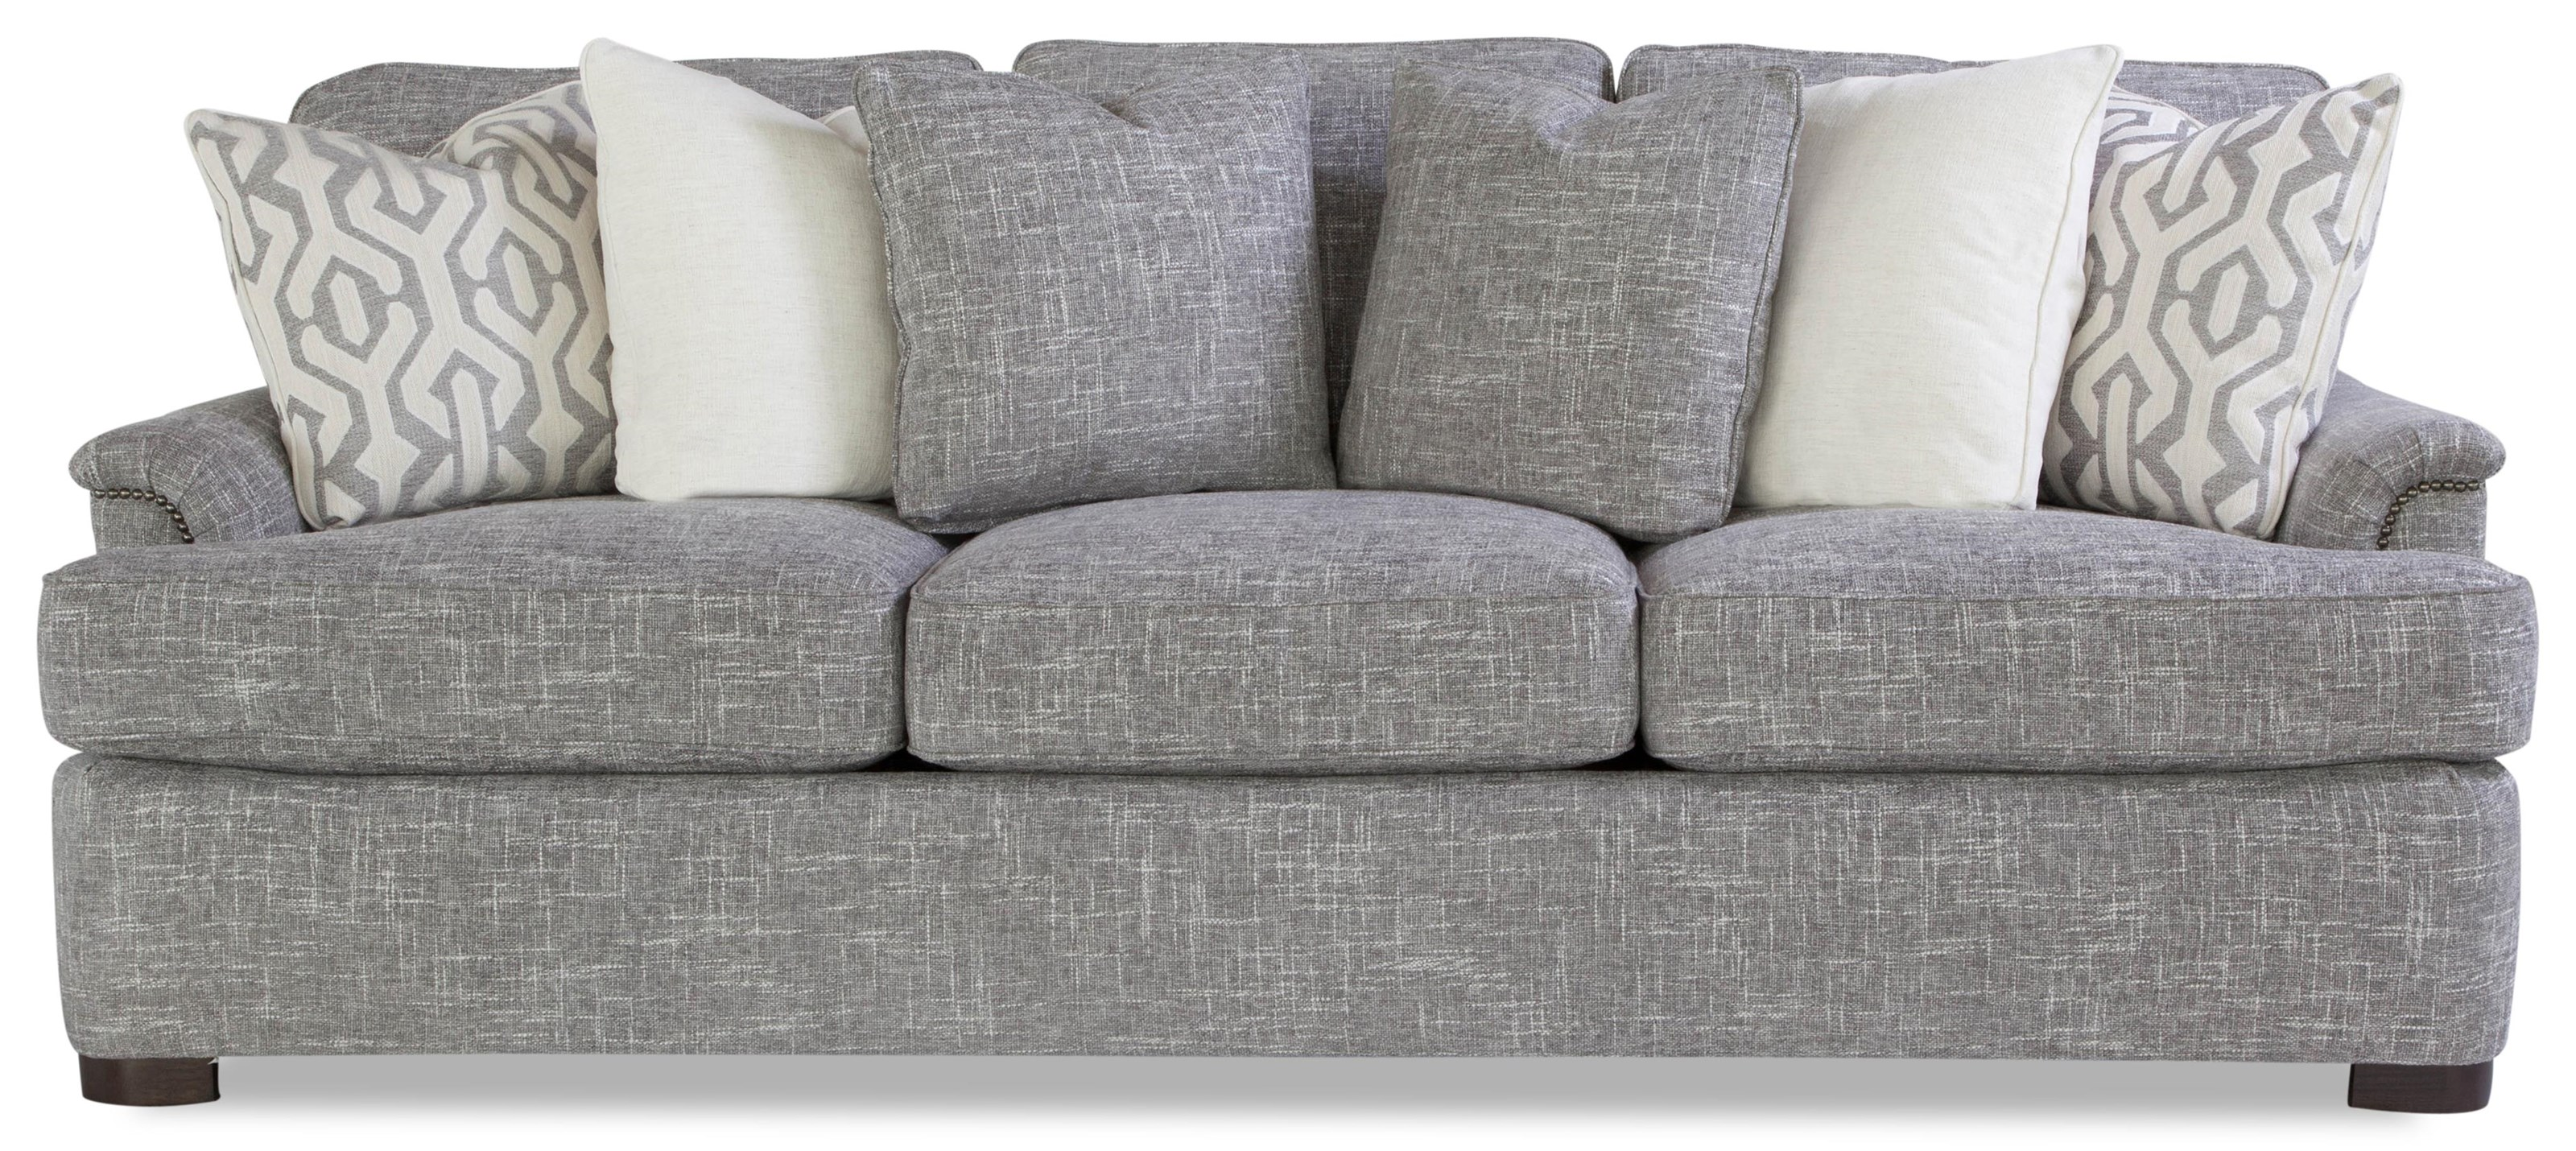 2081 Traditional Sofa  by Huntington House at Baer's Furniture